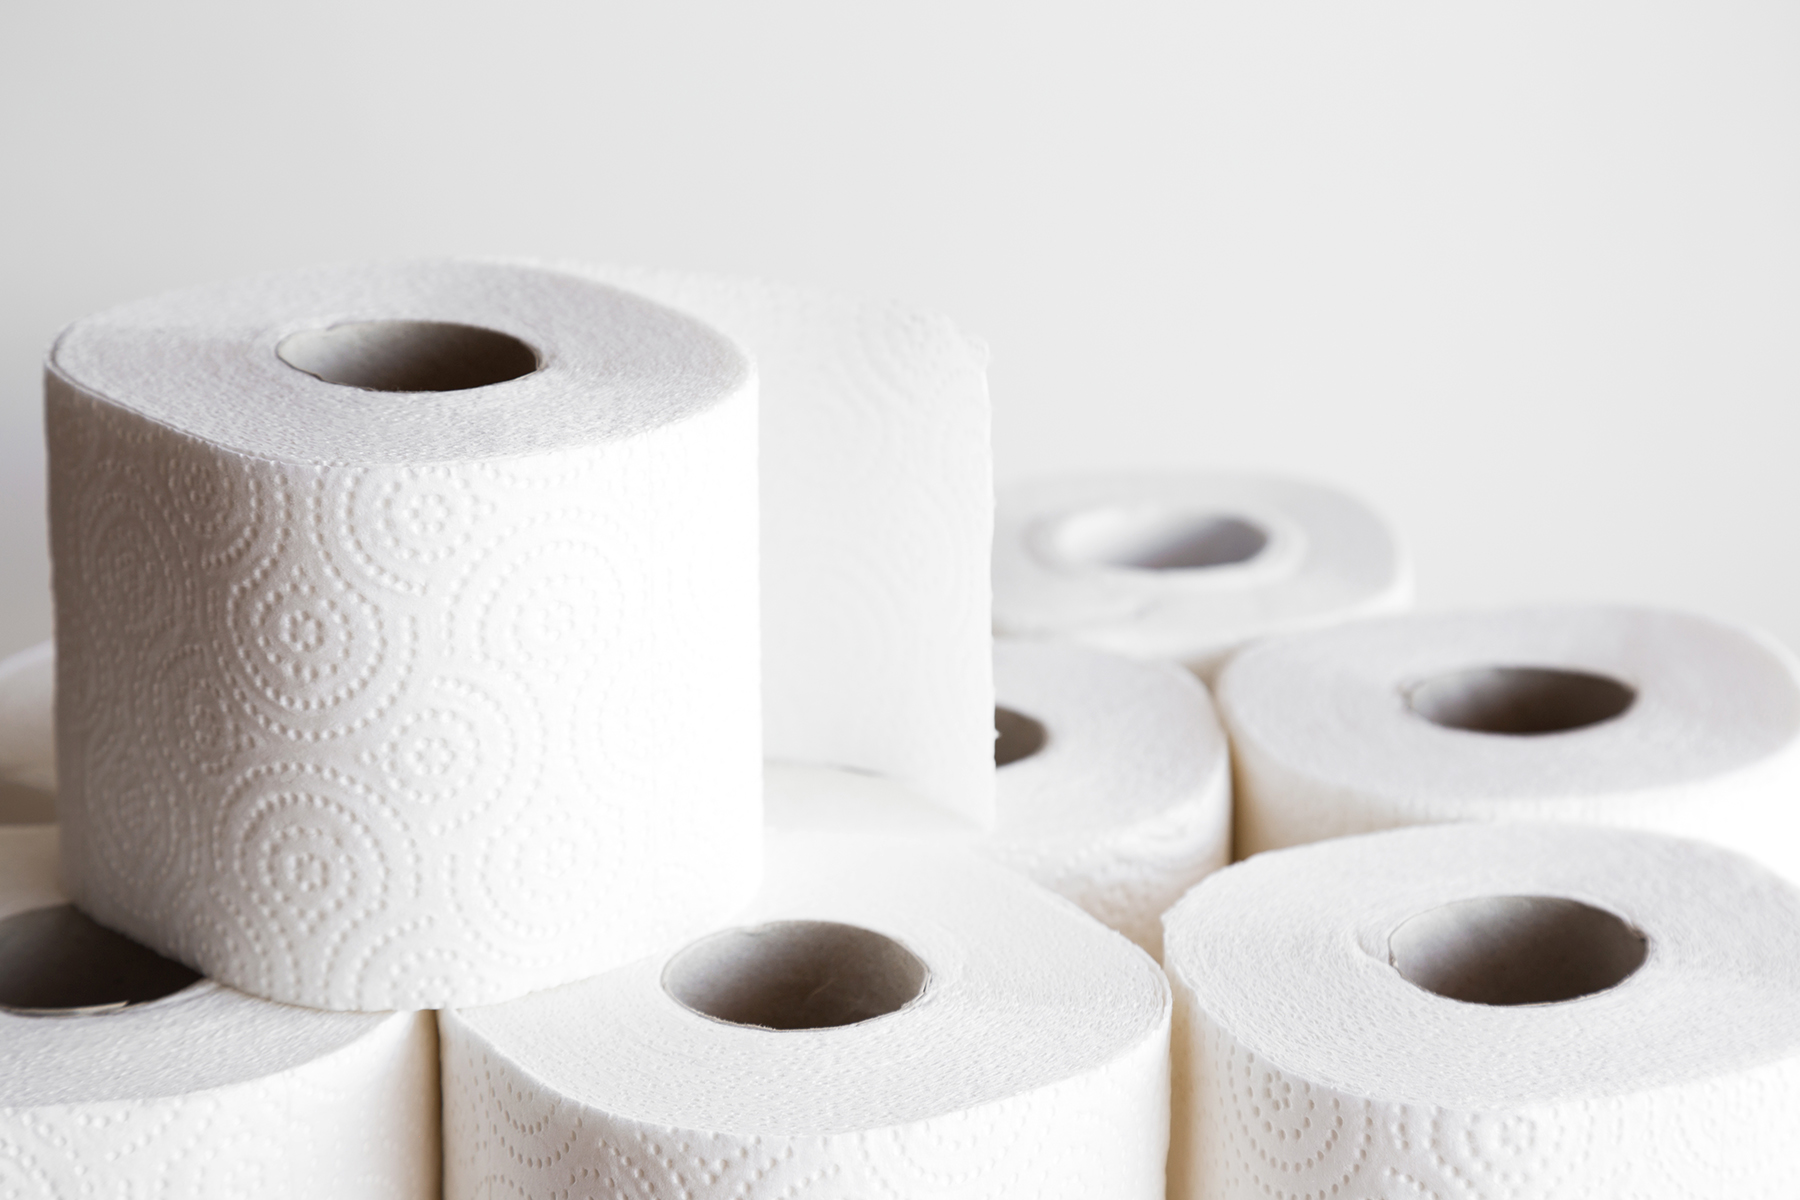 Stack of toilet paper rolls